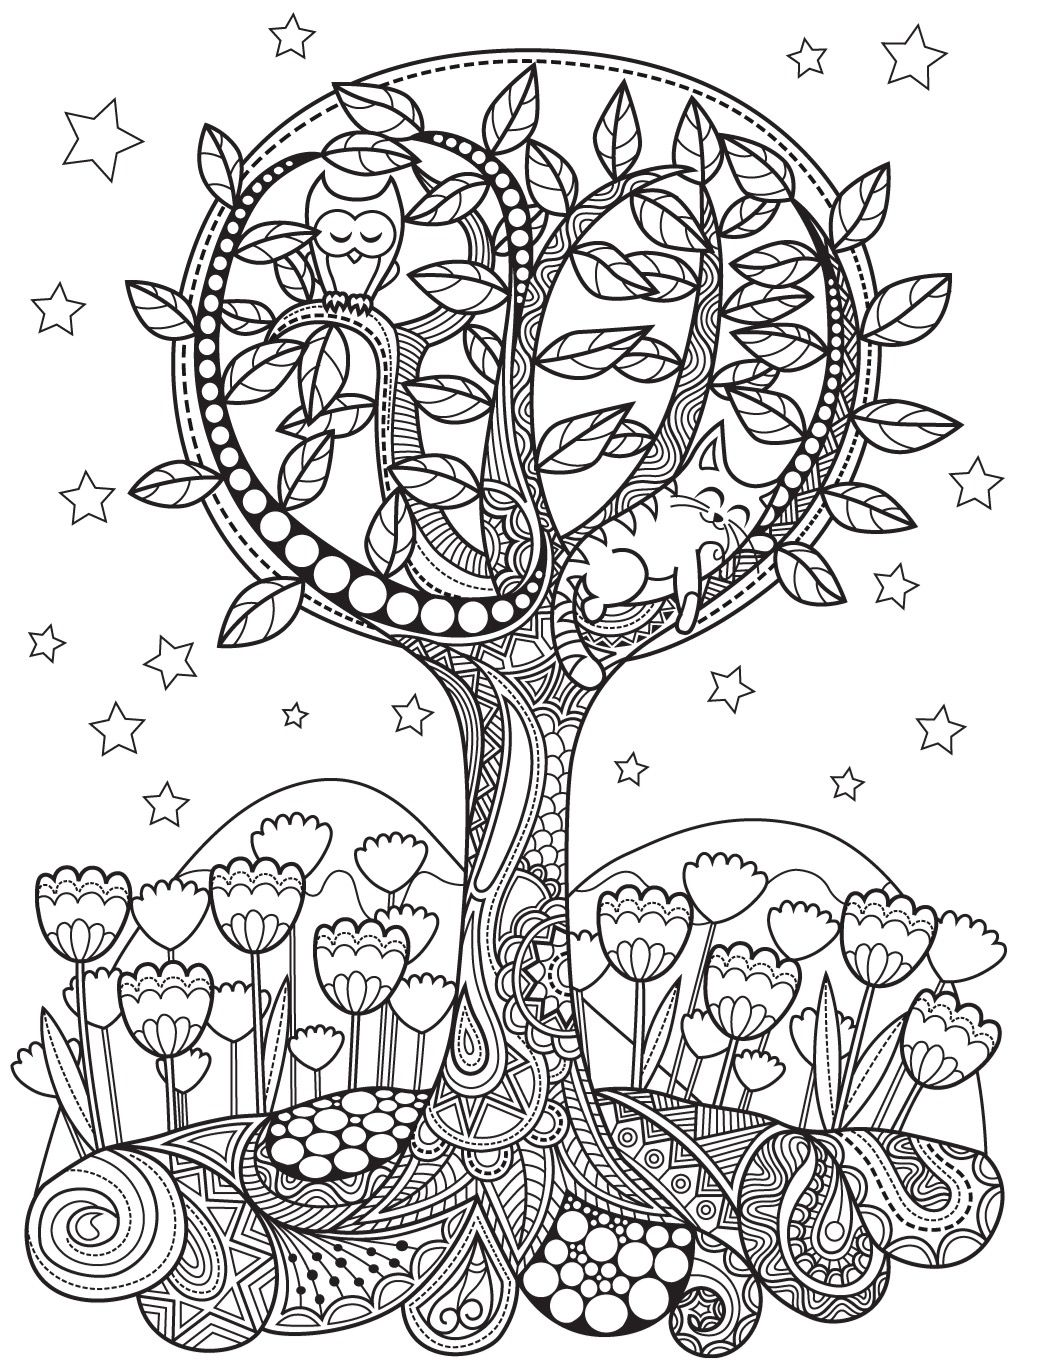 Gardens | Colorish: coloring book app for adults mandala relax by ...